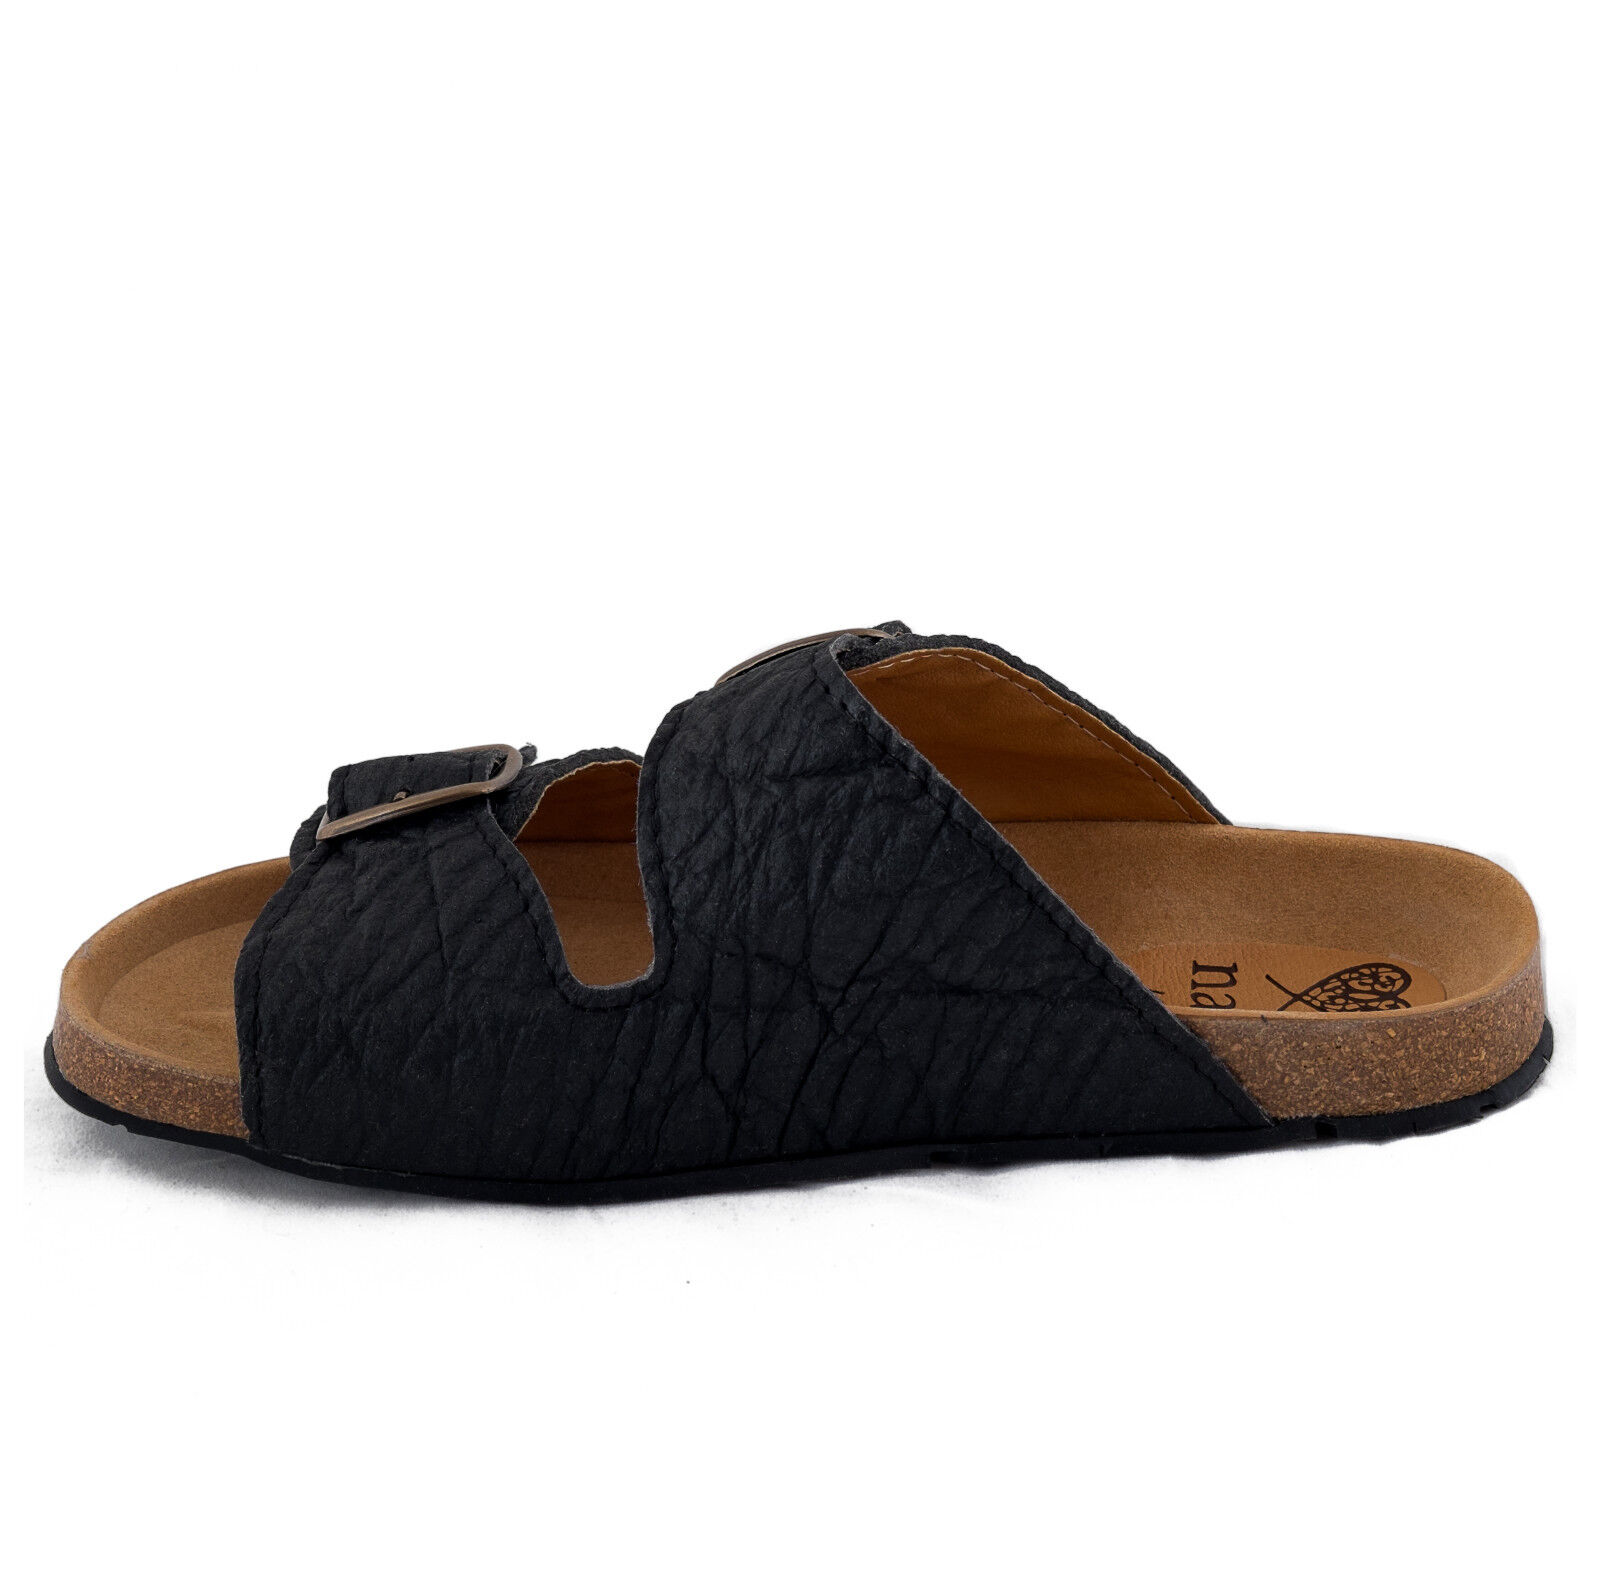 nae made - Two-strapped vegan sandal made nae on original Piñatex, with metal buckle. 701dde